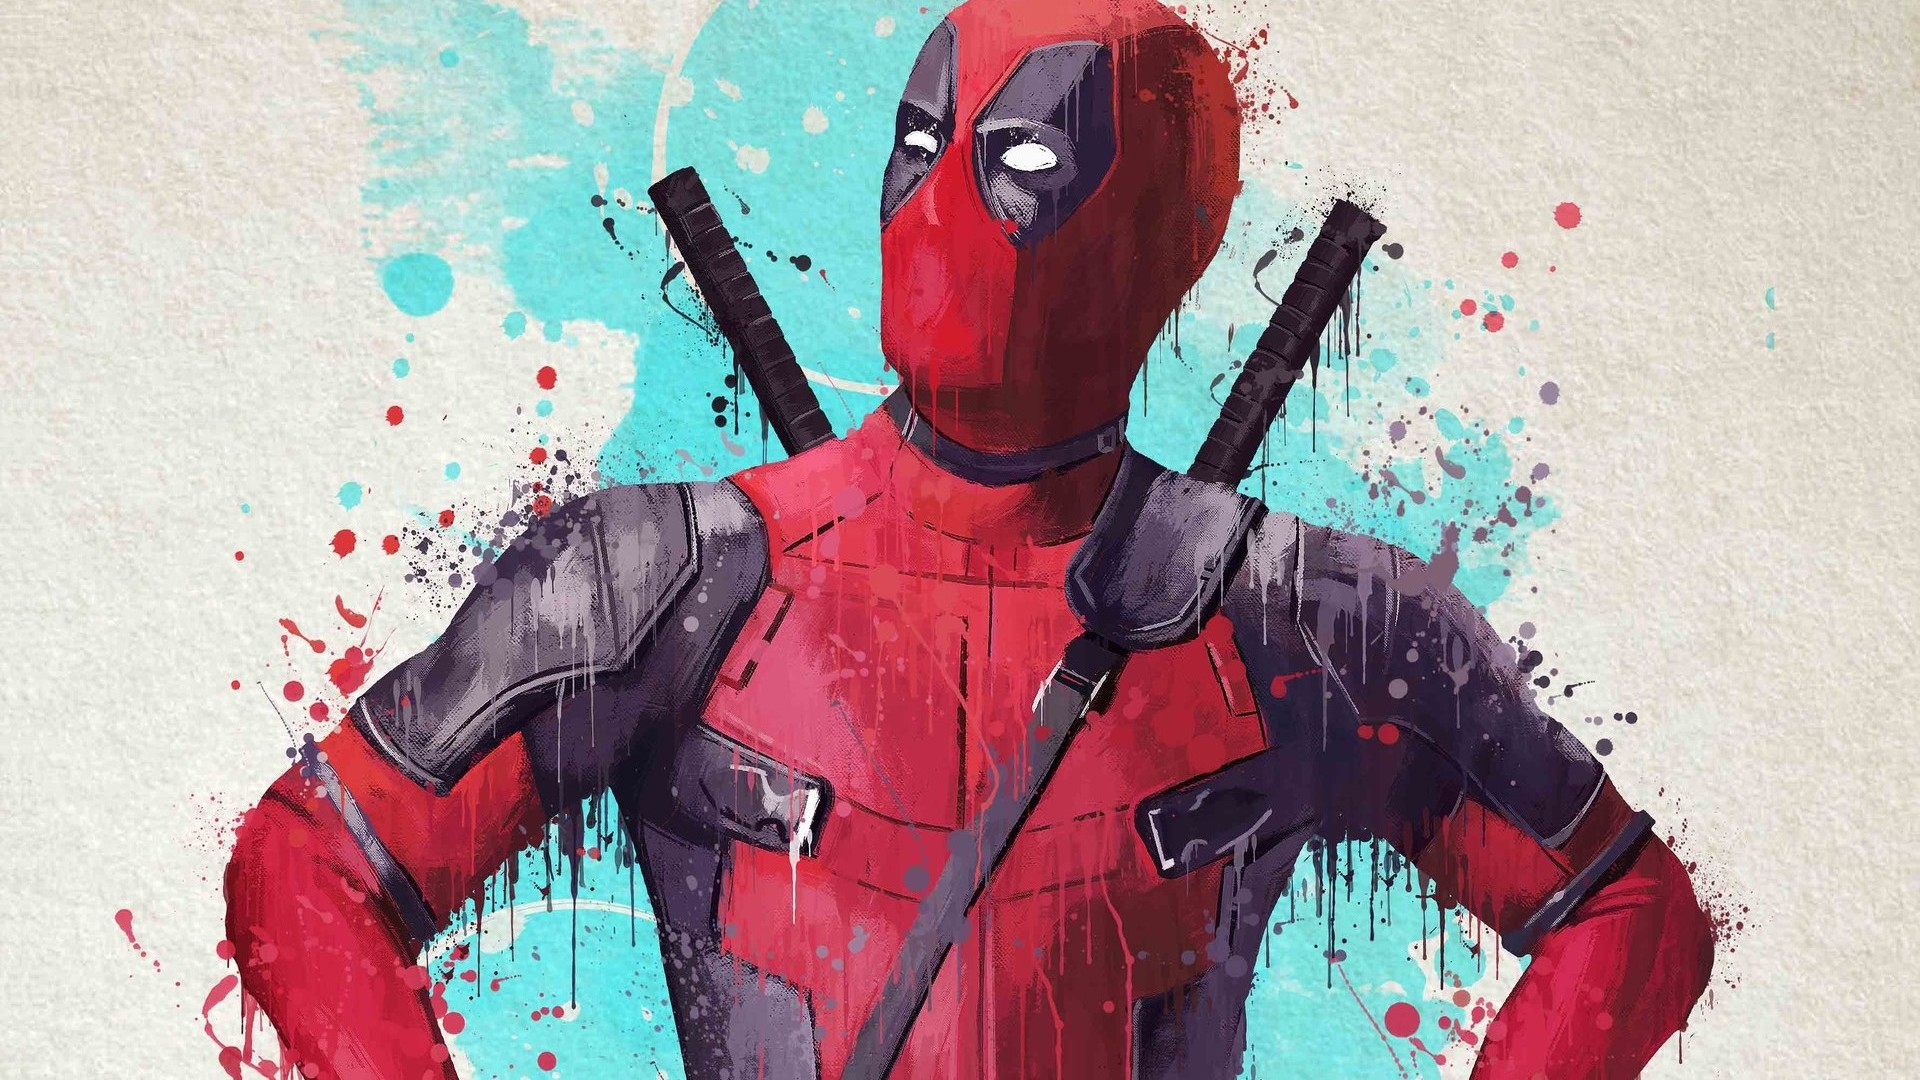 1920x1080 Deadpool Splash Art 1080P Laptop Full HD ...